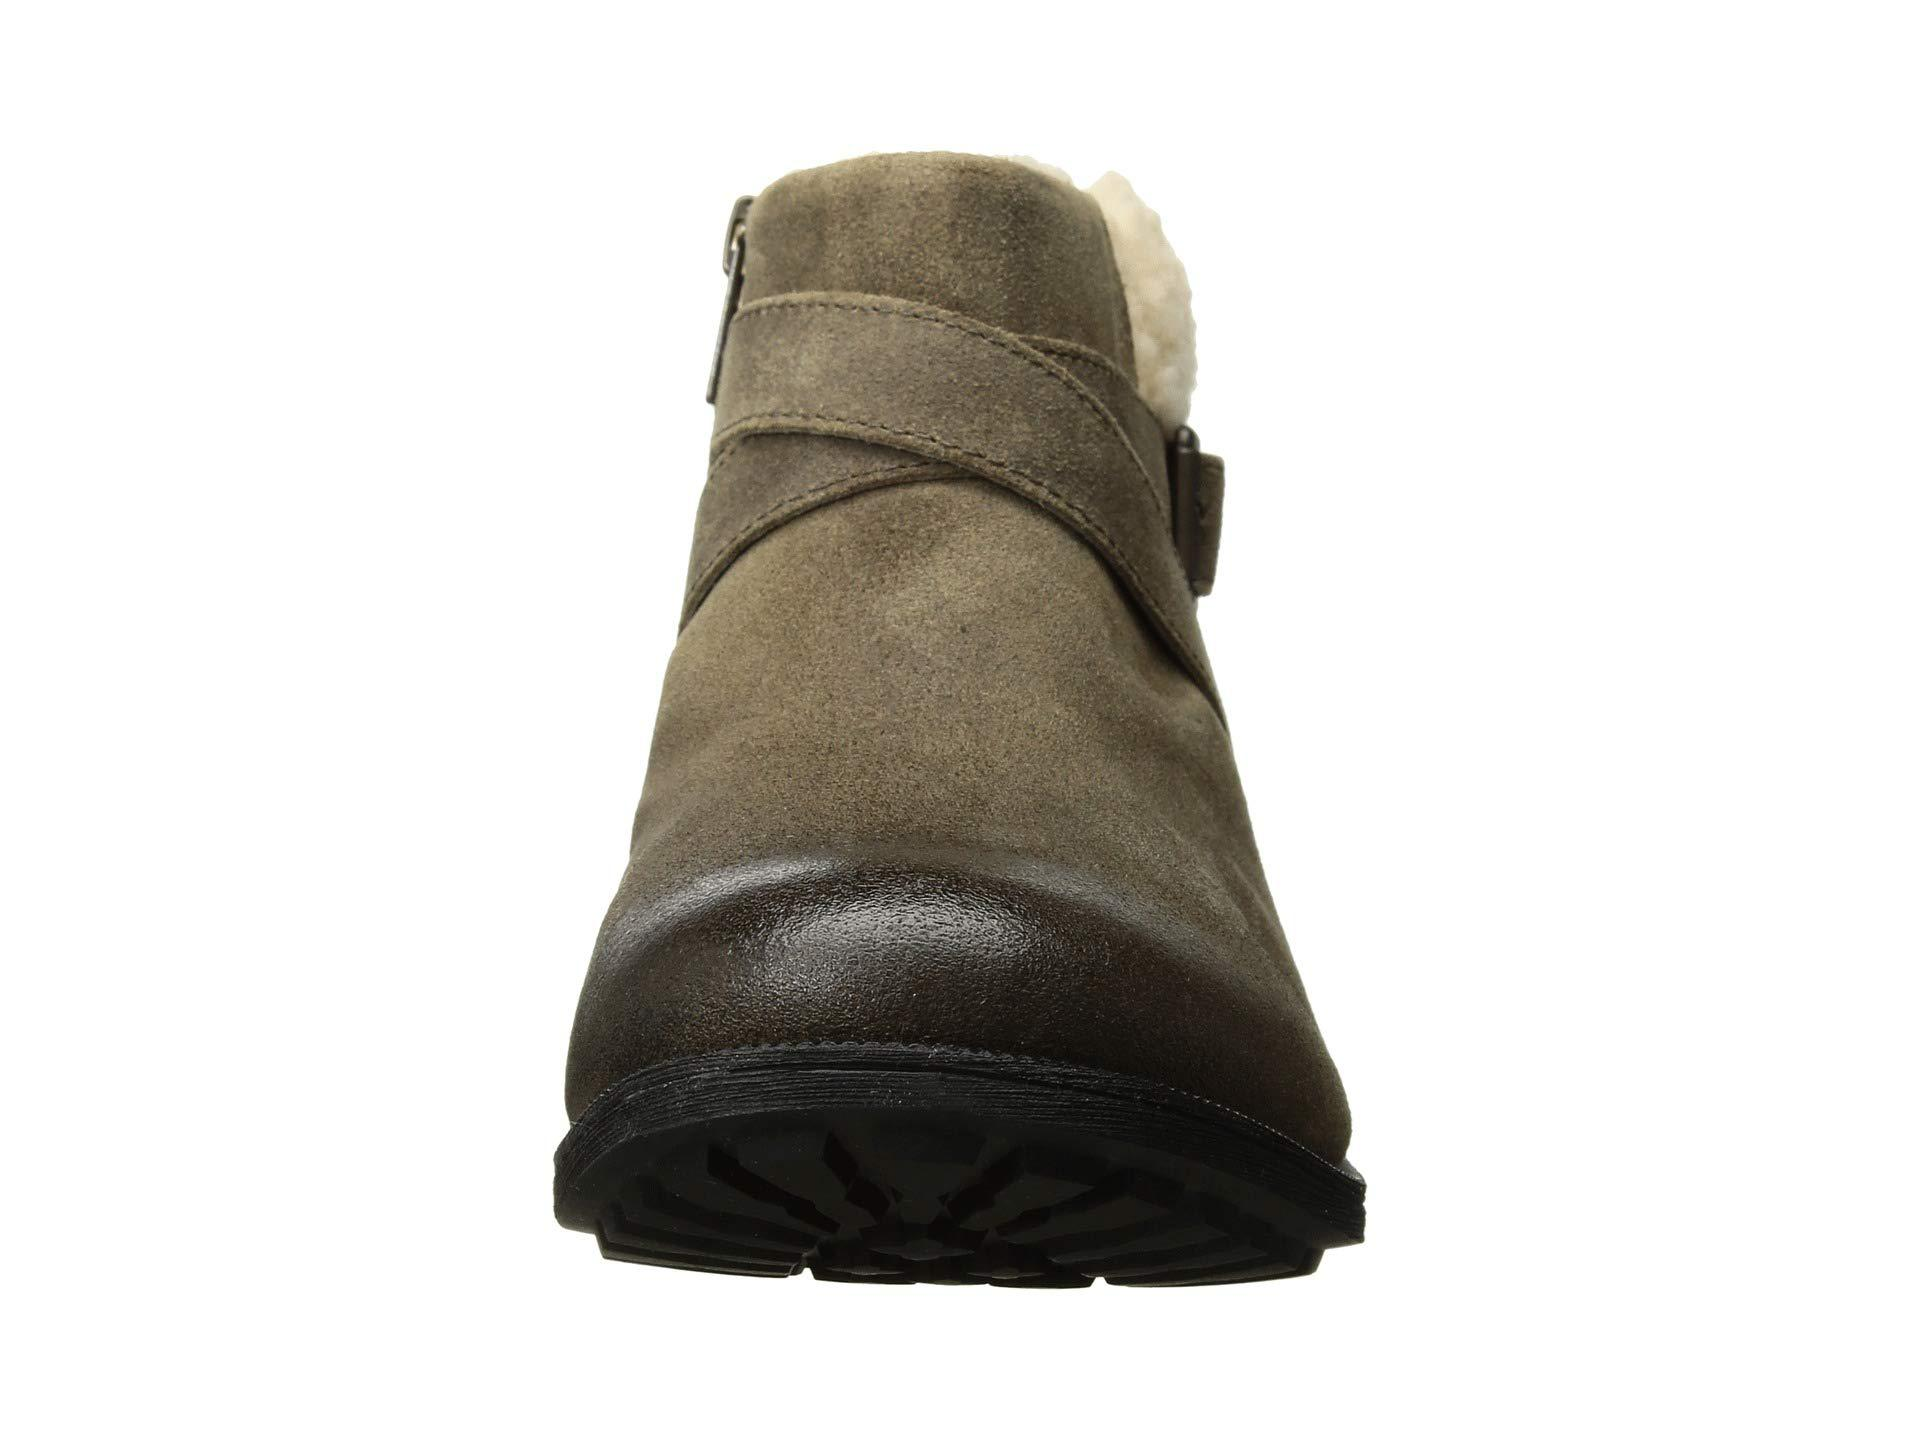 3834fdce700 Benson Boot (chipmunk) Women's Pull-on Boots